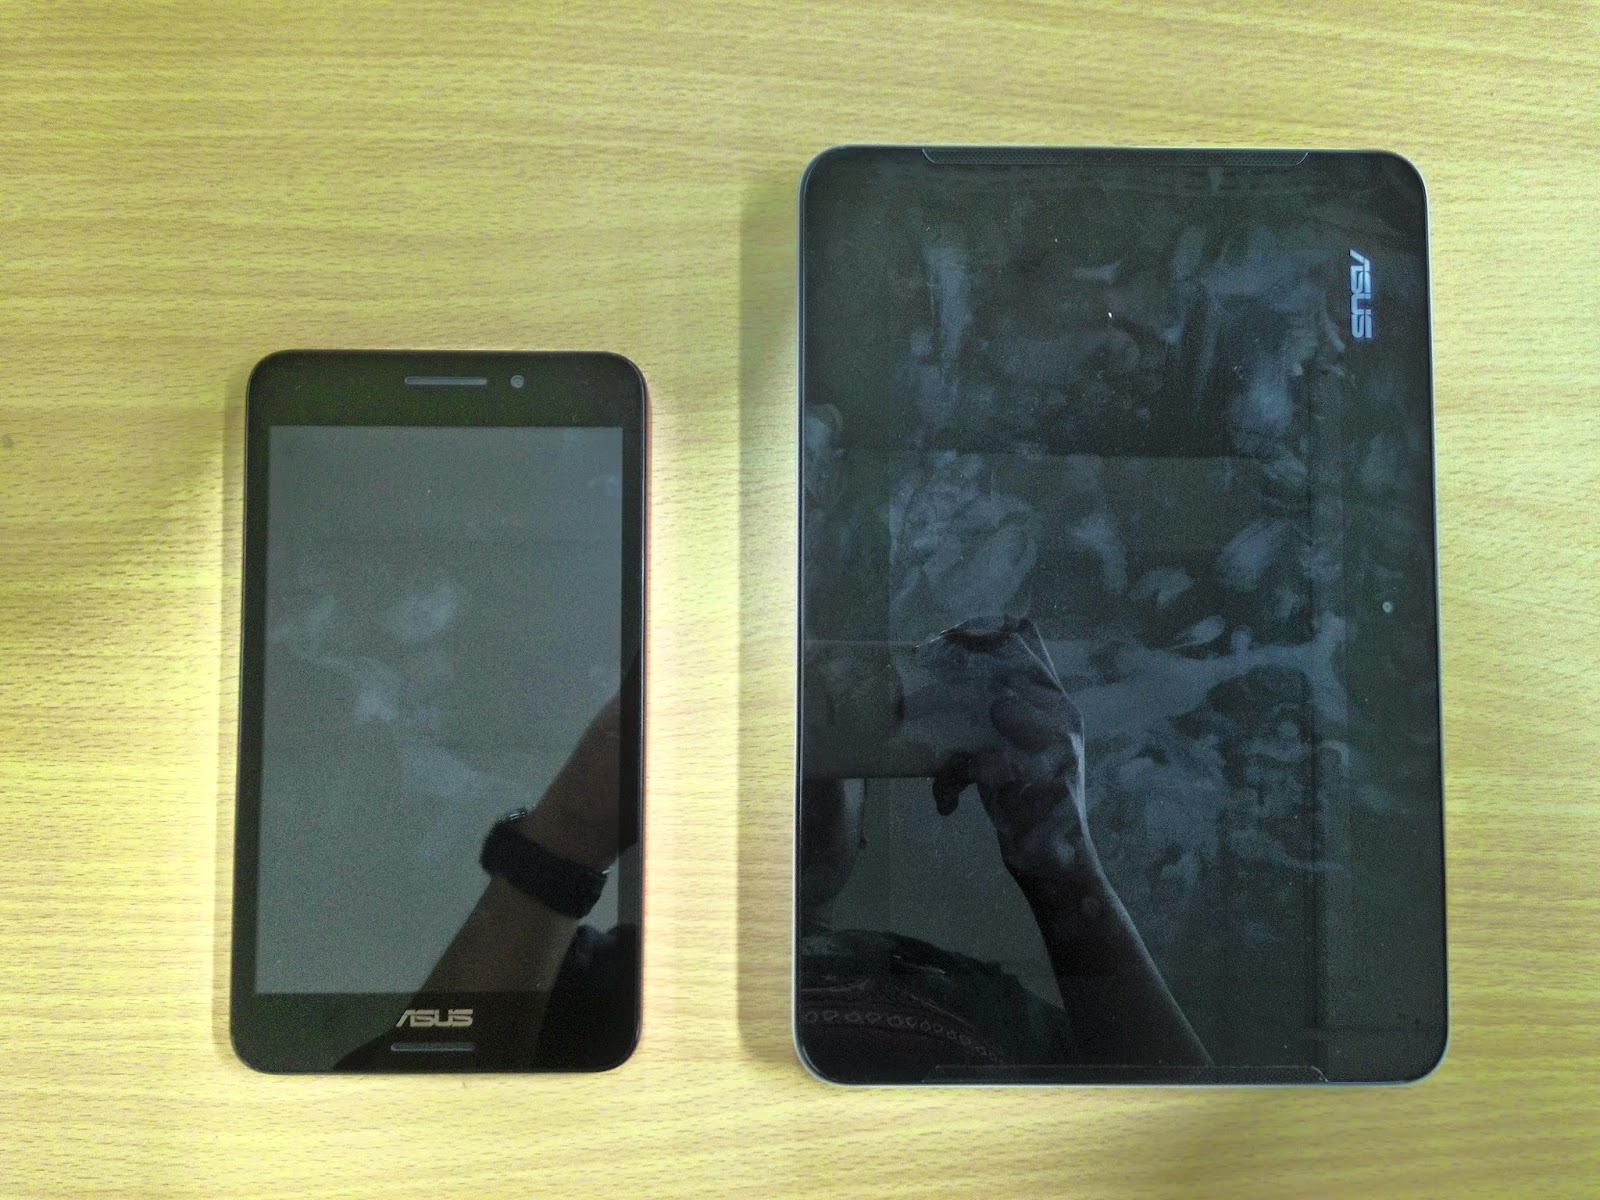 asus tablet how to set brightness